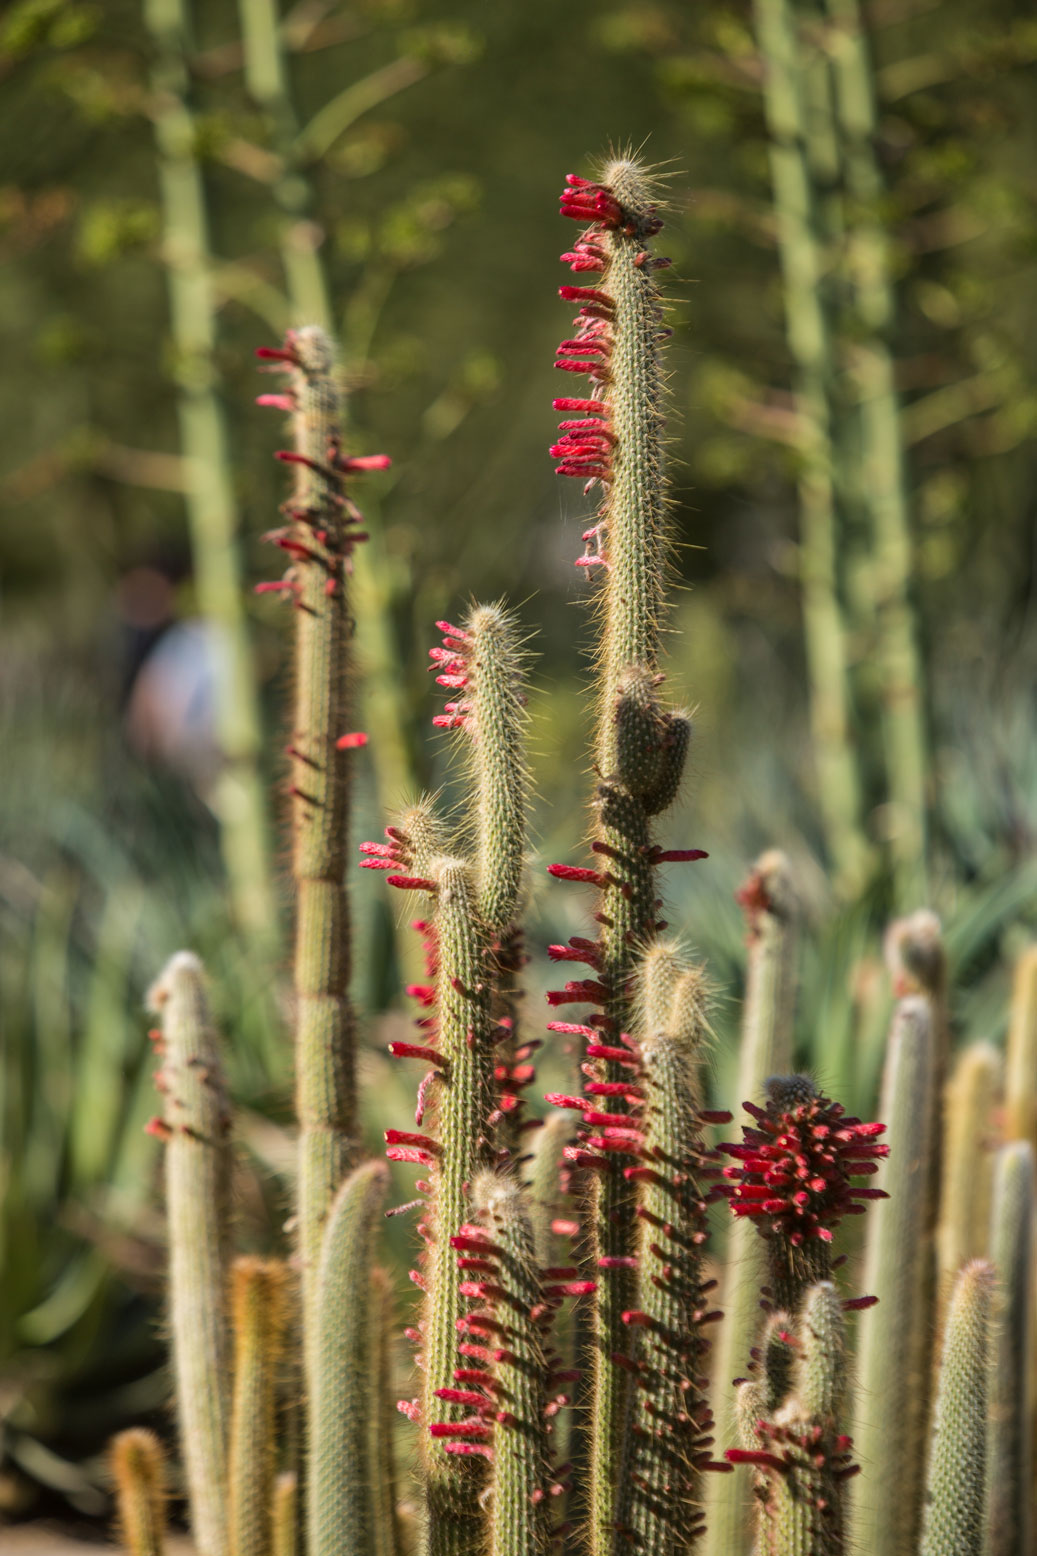 A Silver Torch Cactus in the specimen bed at Sunnylands Center & Gardens.